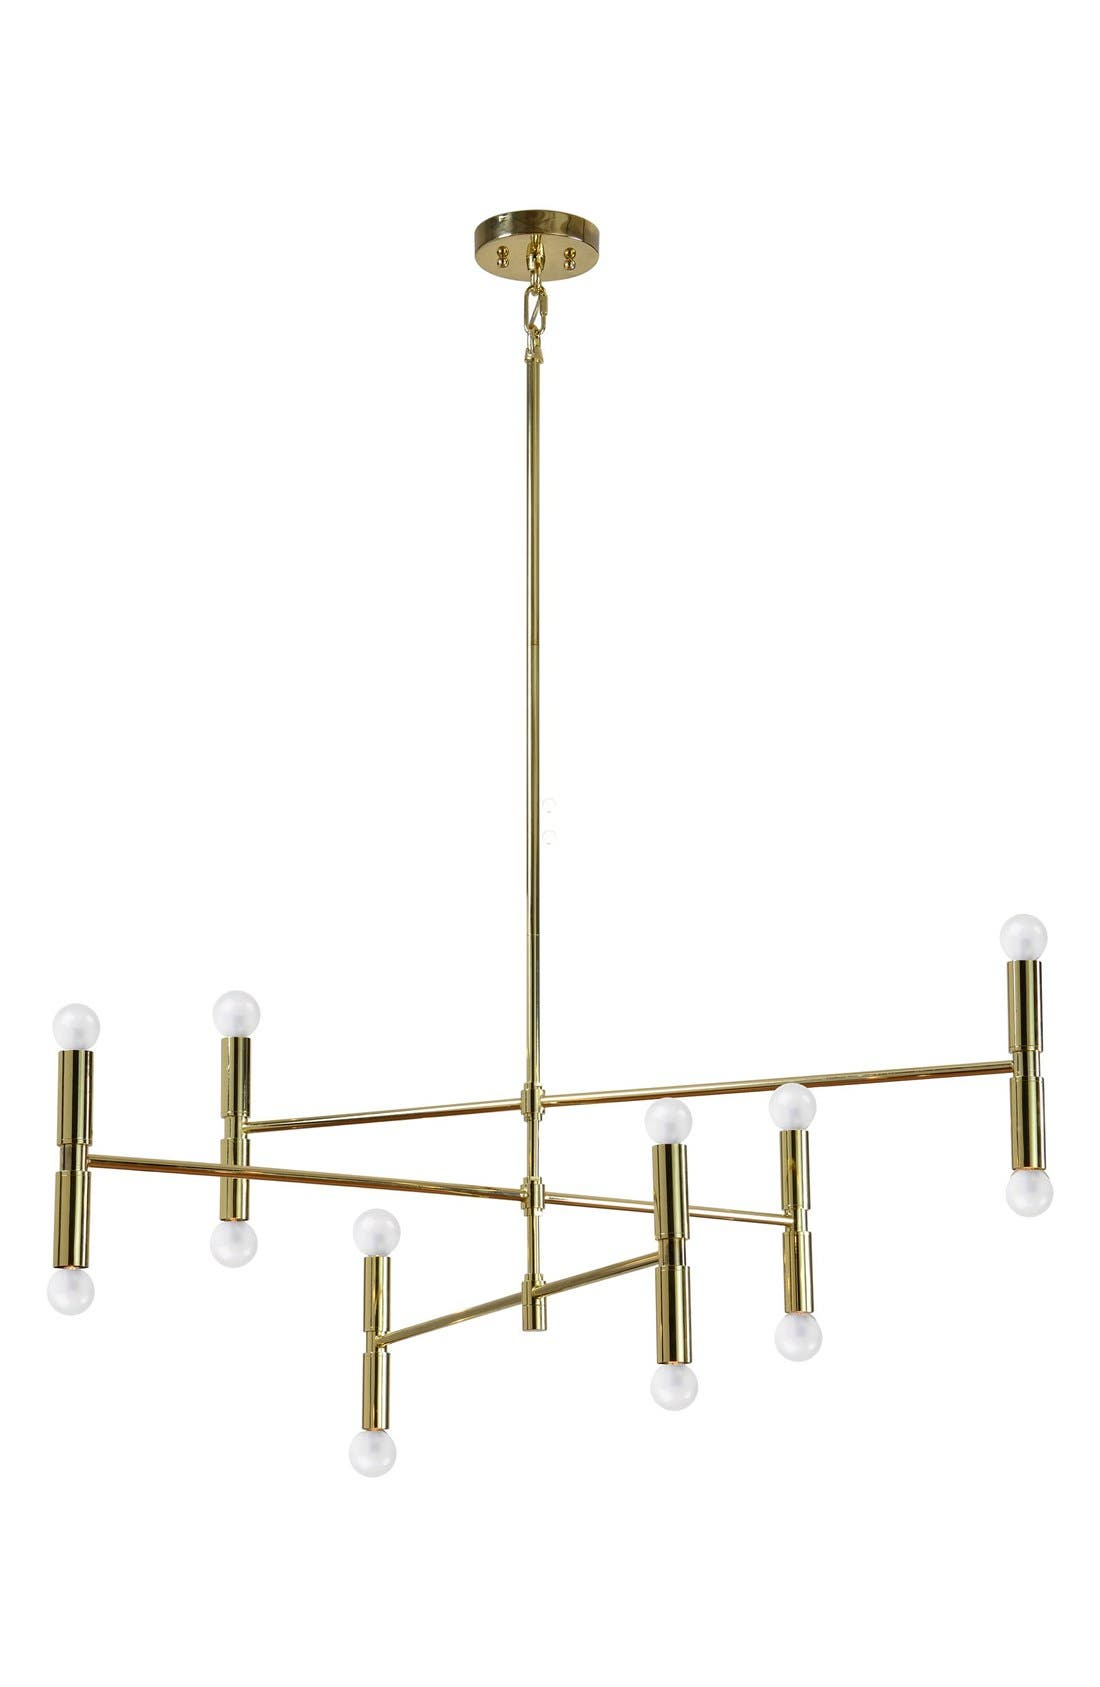 RENWIL 'Axis' Ceiling Light Fixture